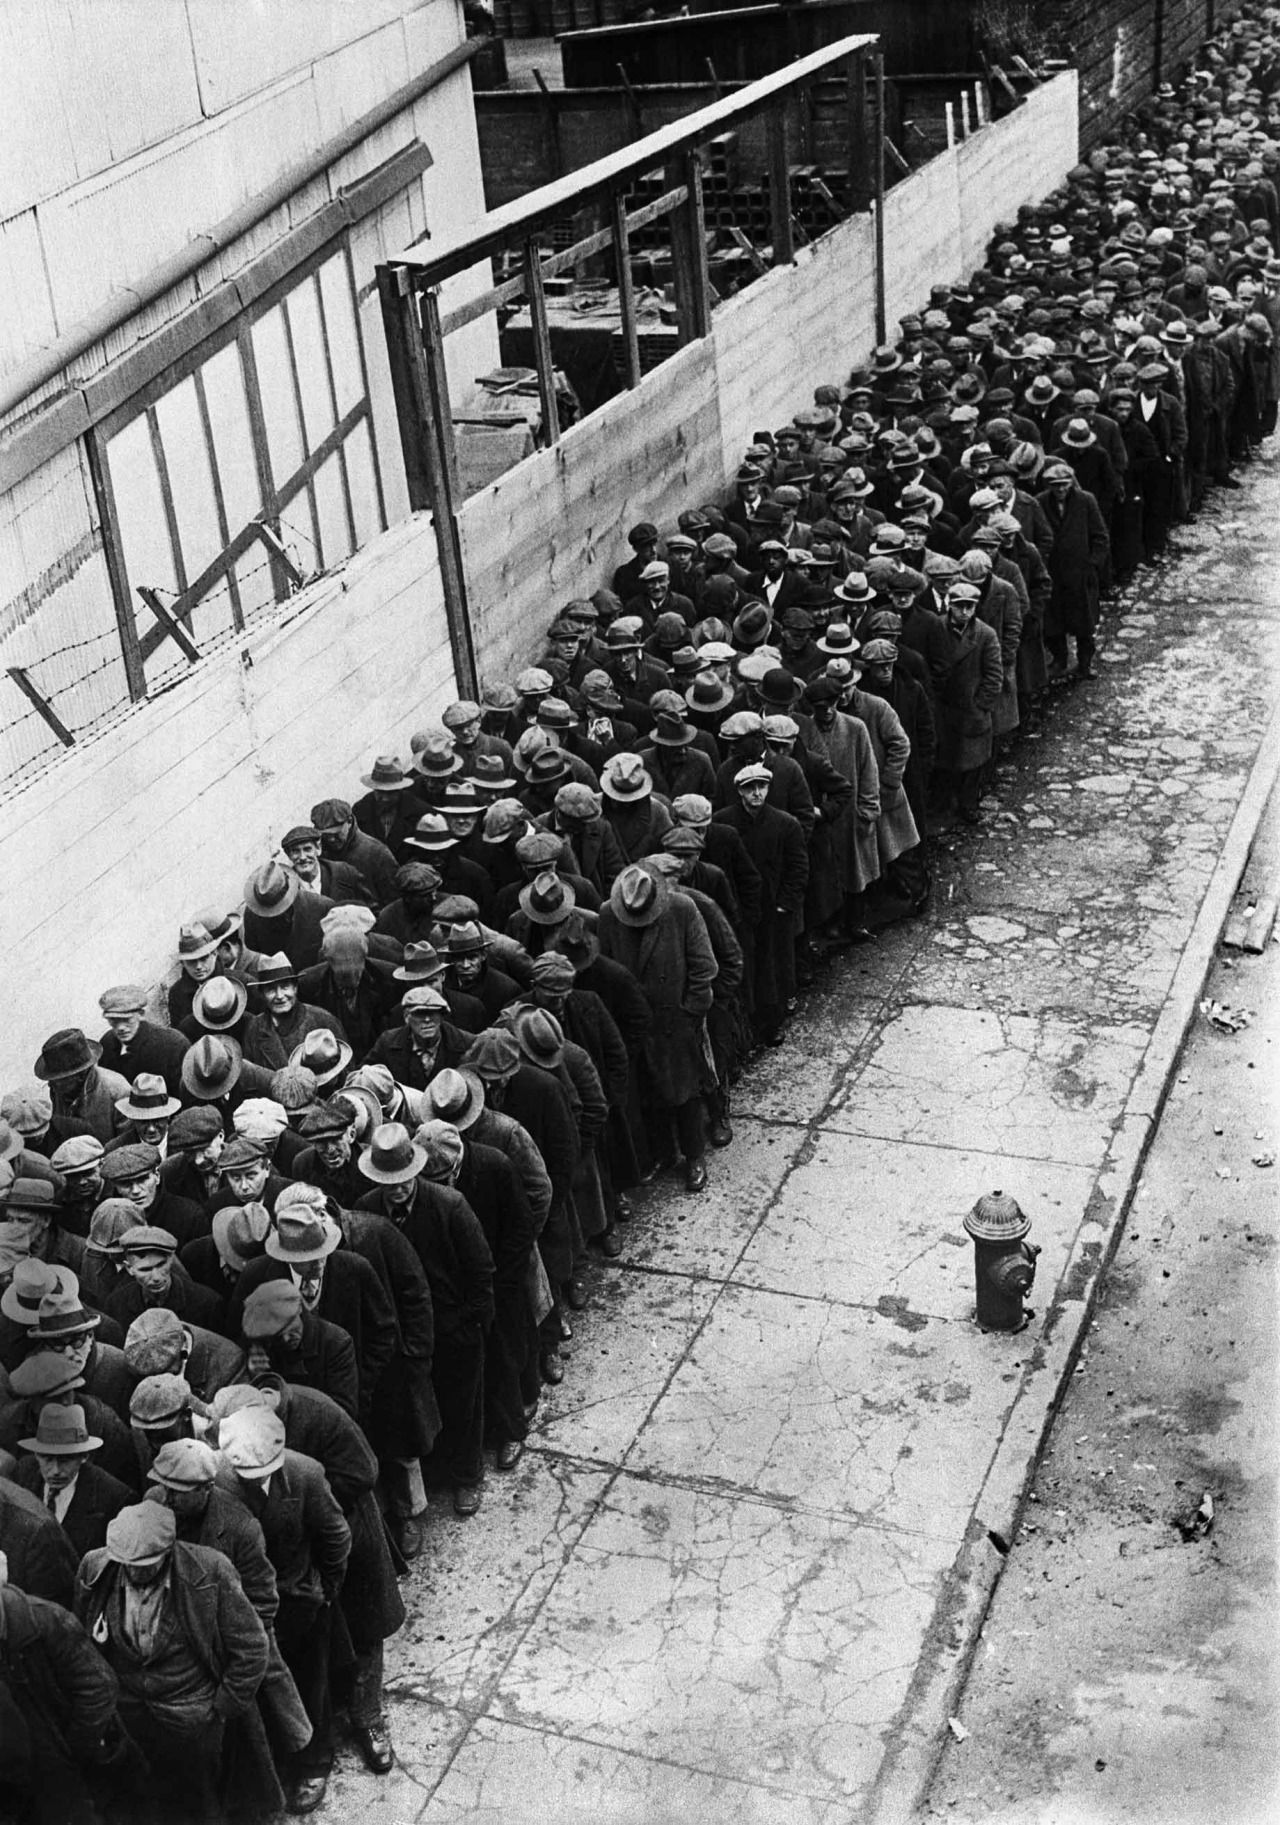 the great depression - men waiting in line for work. 1930 | old